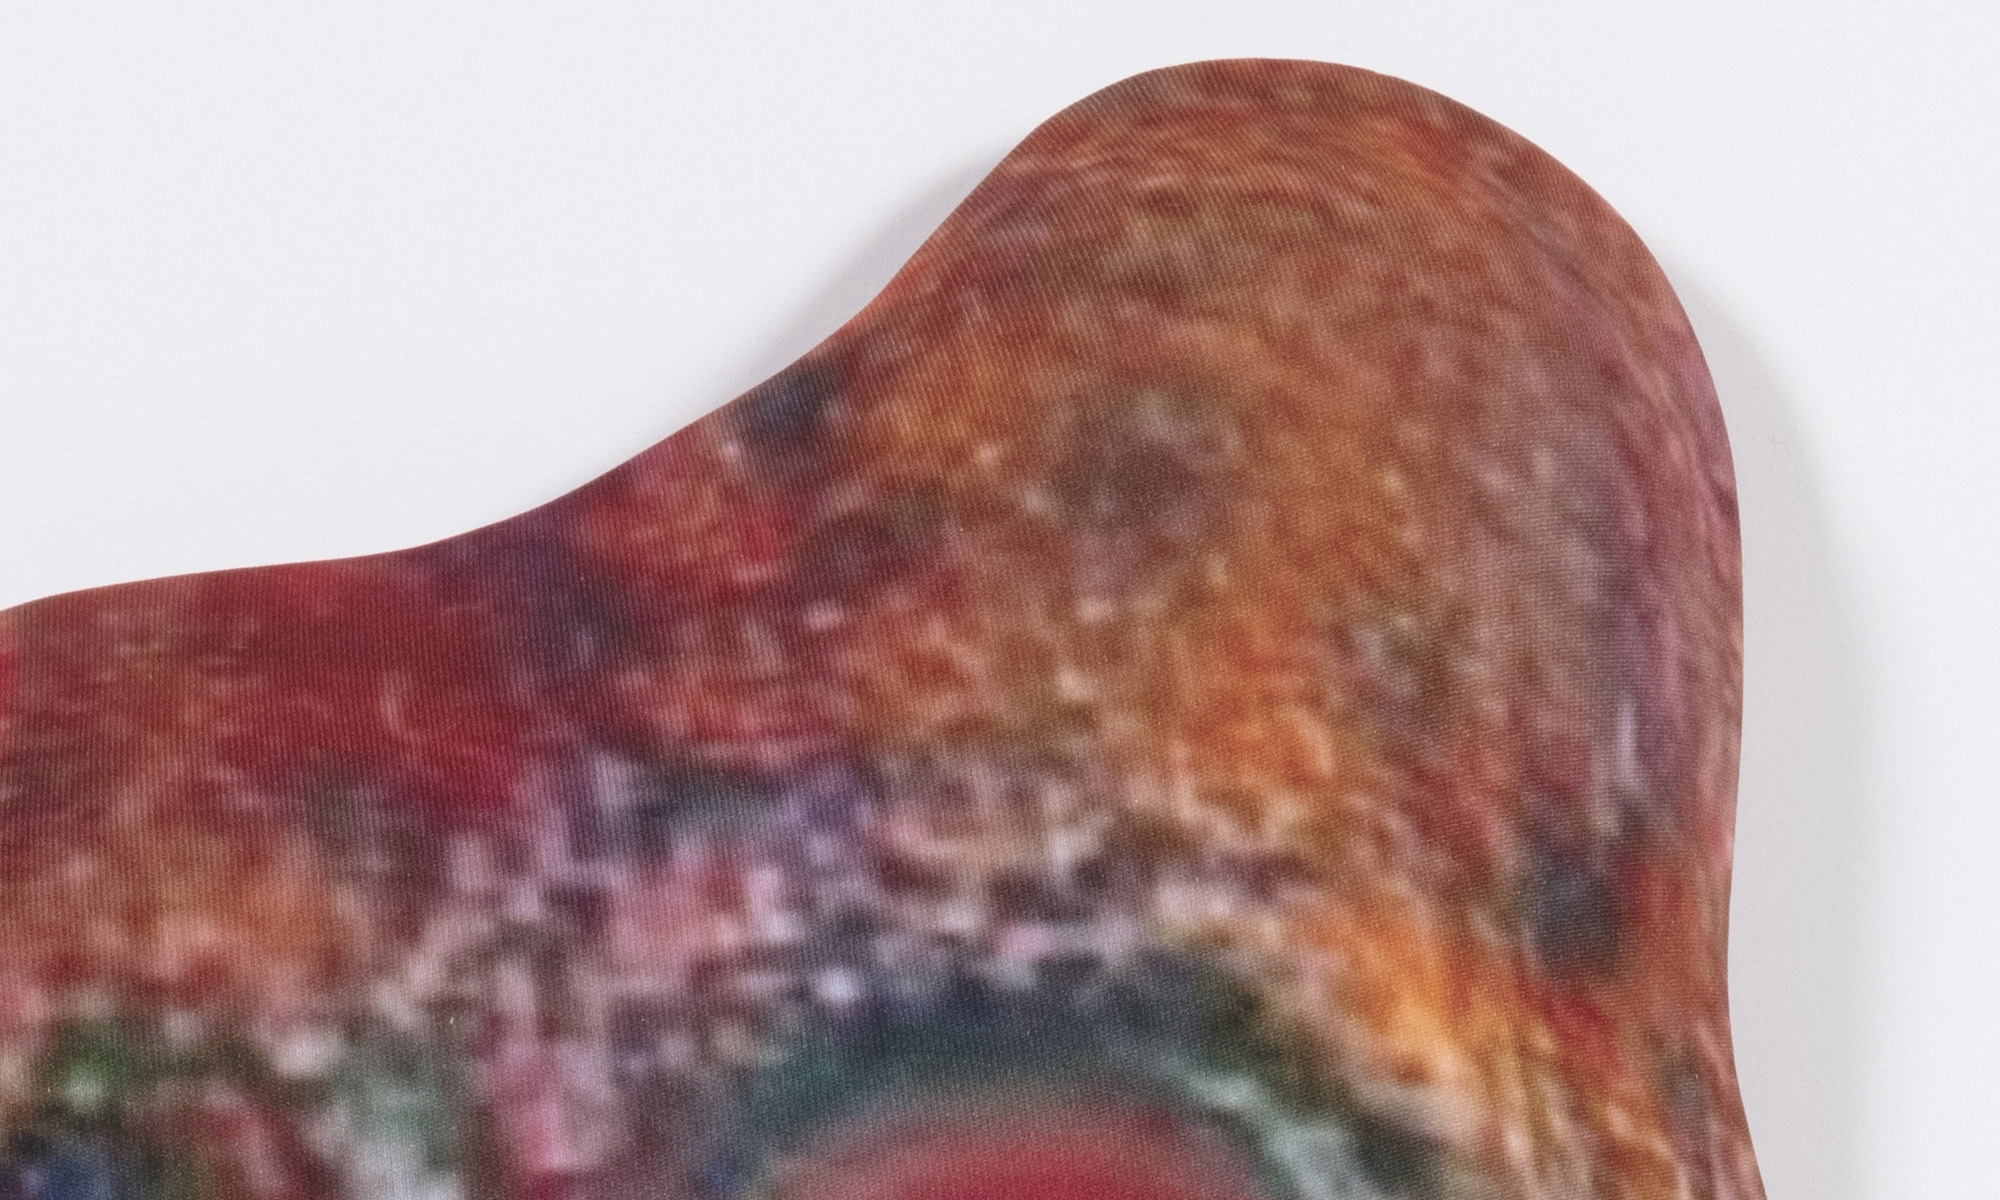 Hannah Epstein. <em>Burgermeister</em>, 2020. Digital print on lycra; polyfill and wood, 23 1/2 x 17 1/2 x 3 inches (59.7 x 44.5 x 7.6 cm) Detail